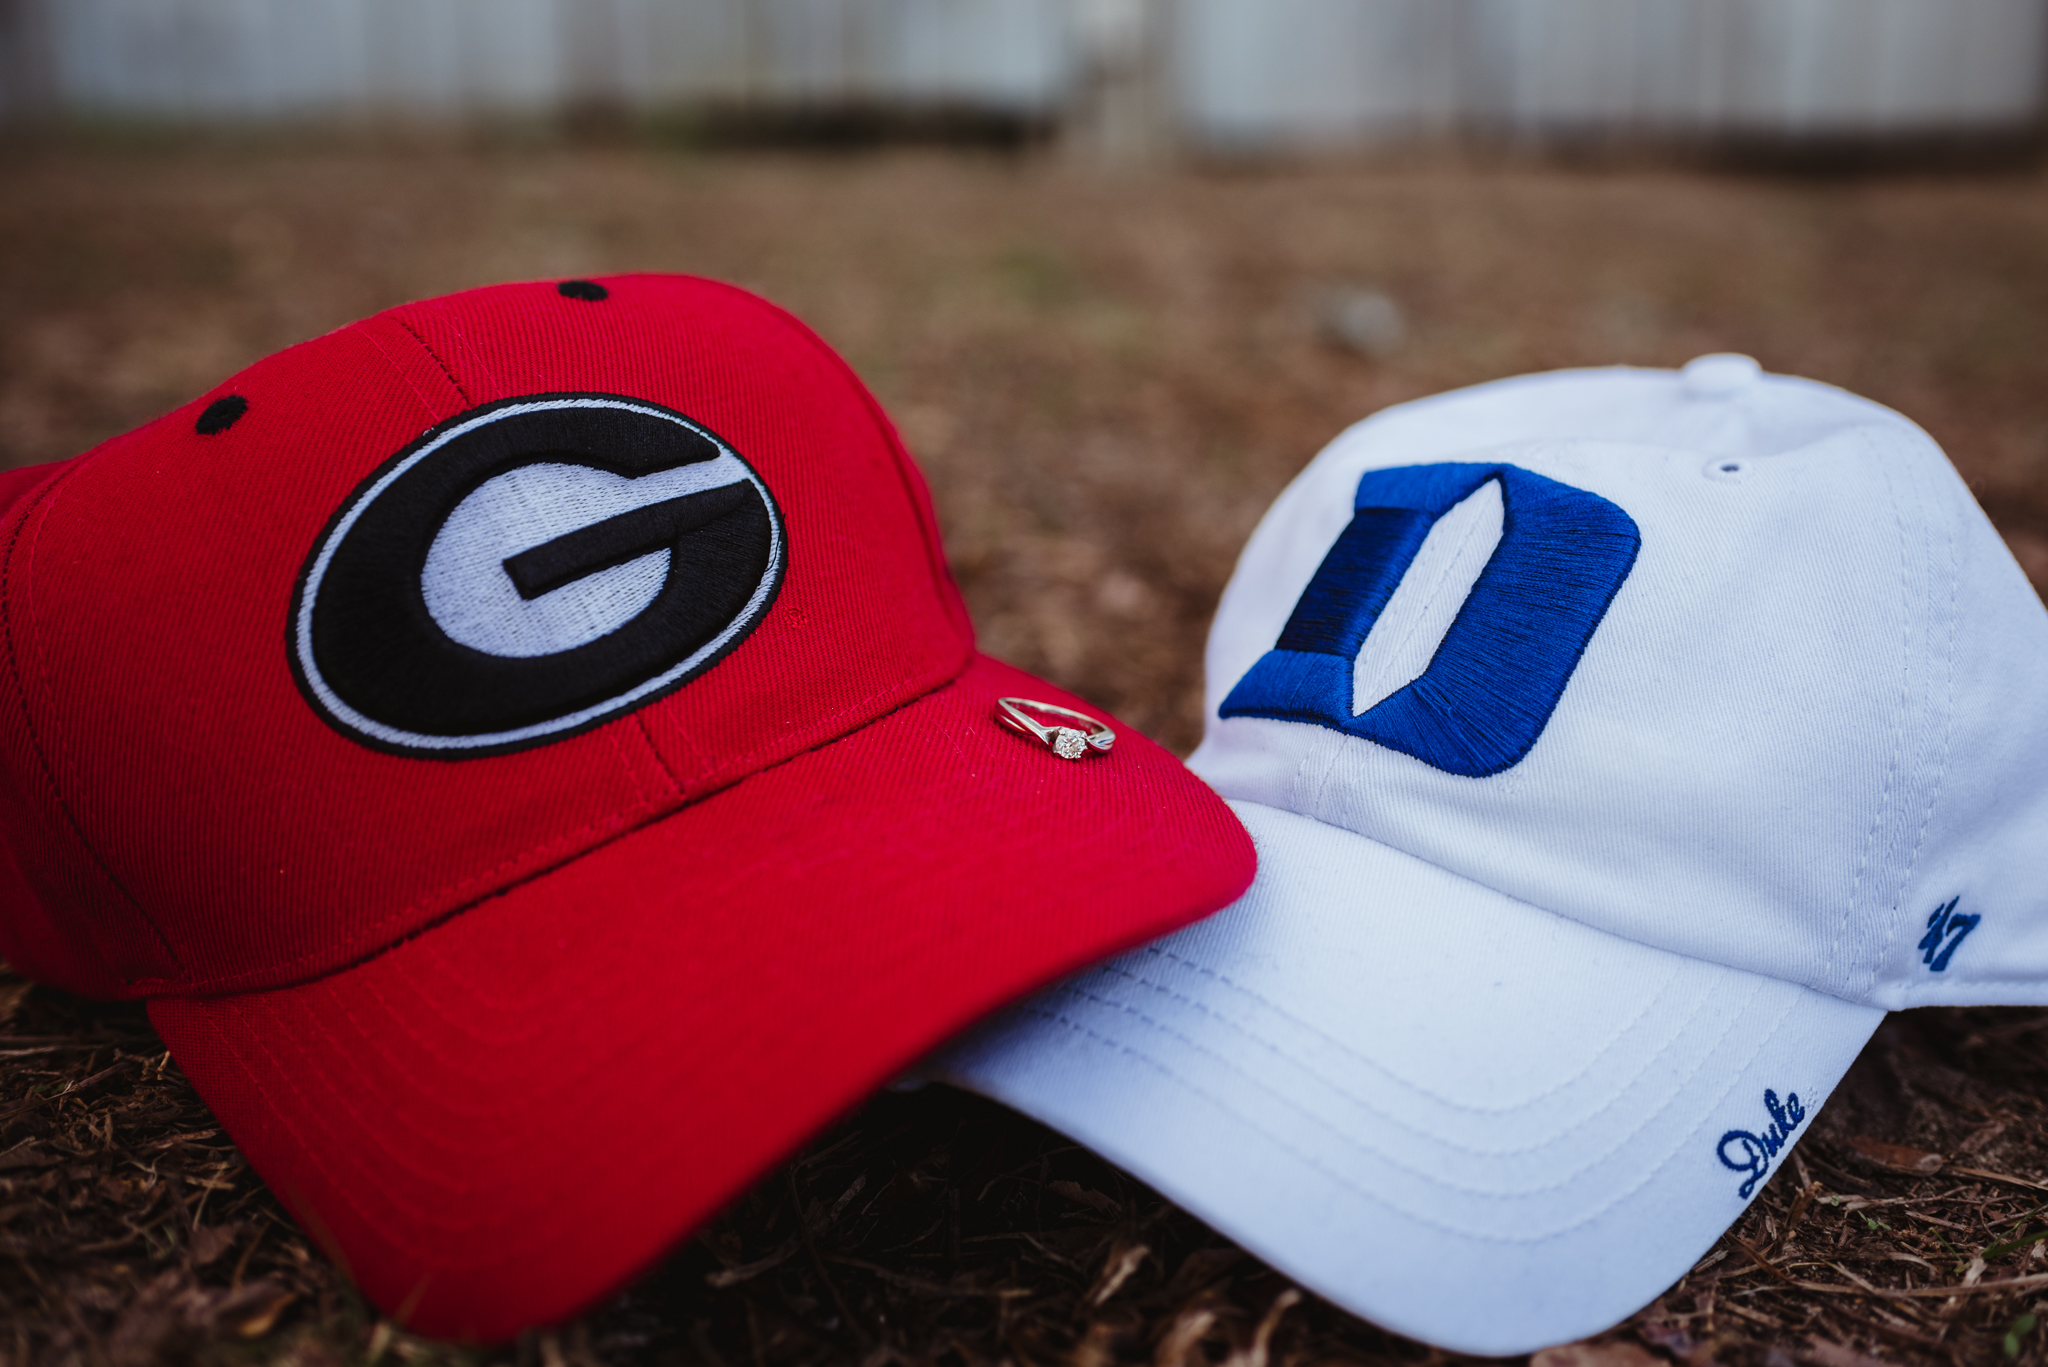 Her engagement ring was carefully placed on the Georgia Bulldogs and Duke BlueDevils hats during their engagement session with Rose Trail Images at a barn in Wake Forest, NC.